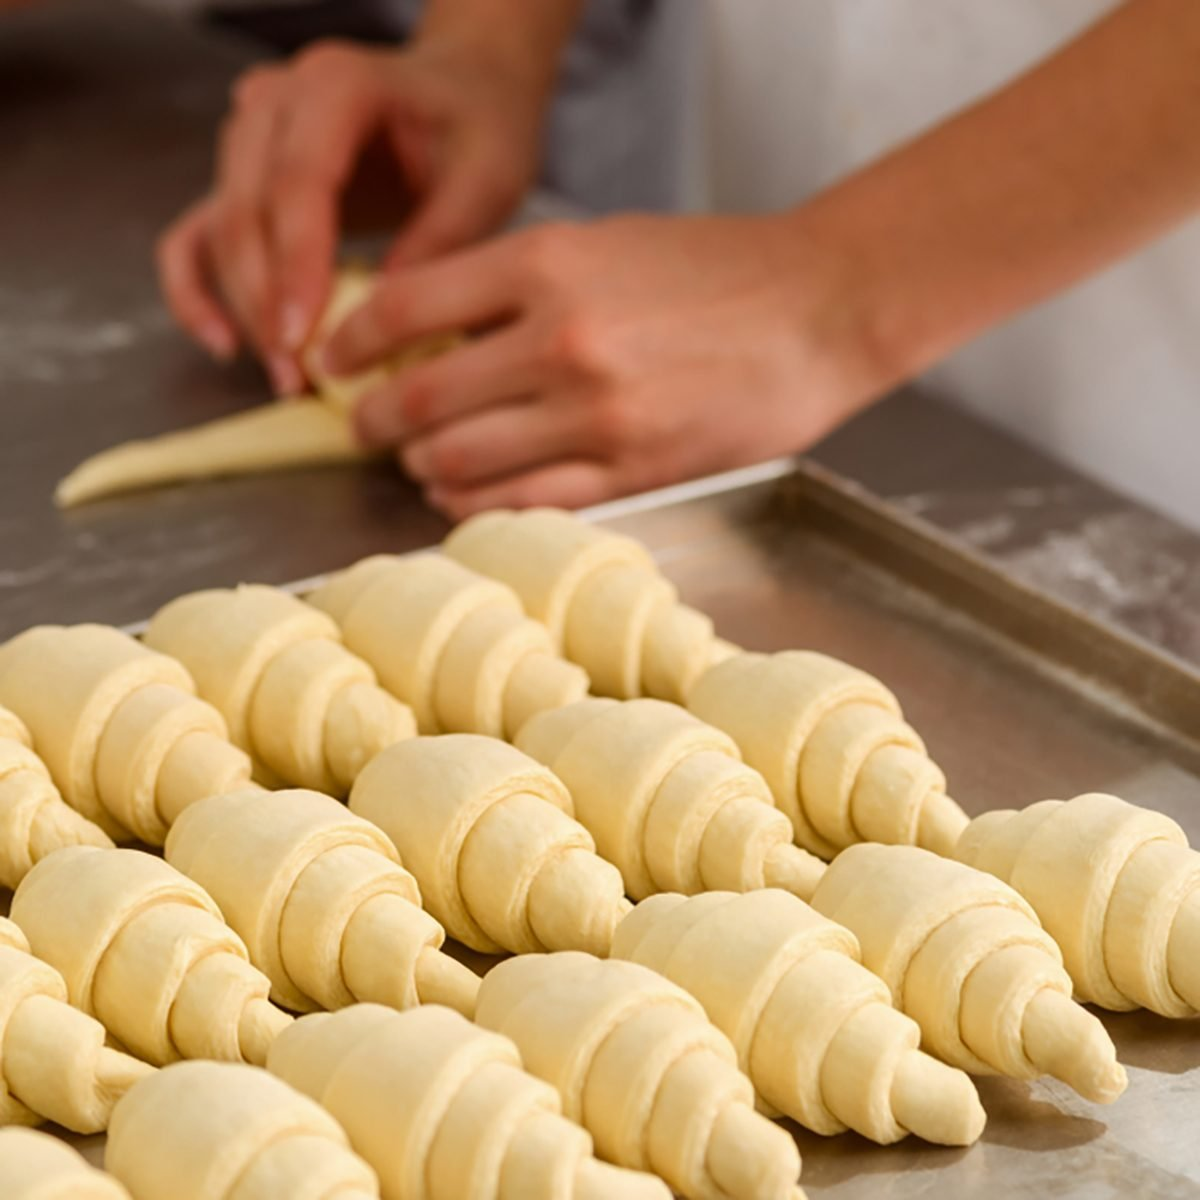 Producing classic croissants at the bakery shop.